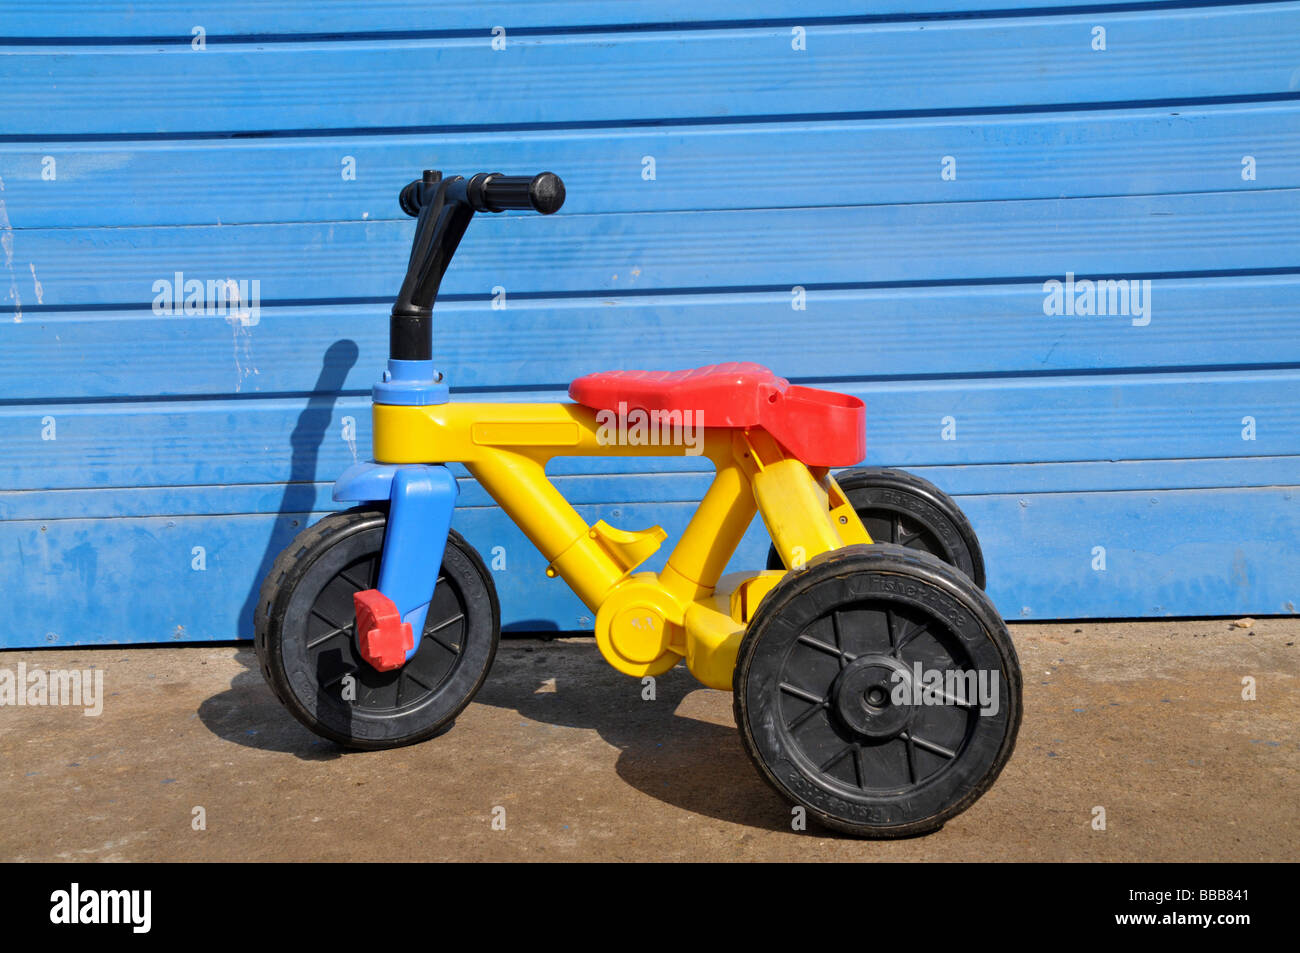 a young child's tricycle. - Stock Image